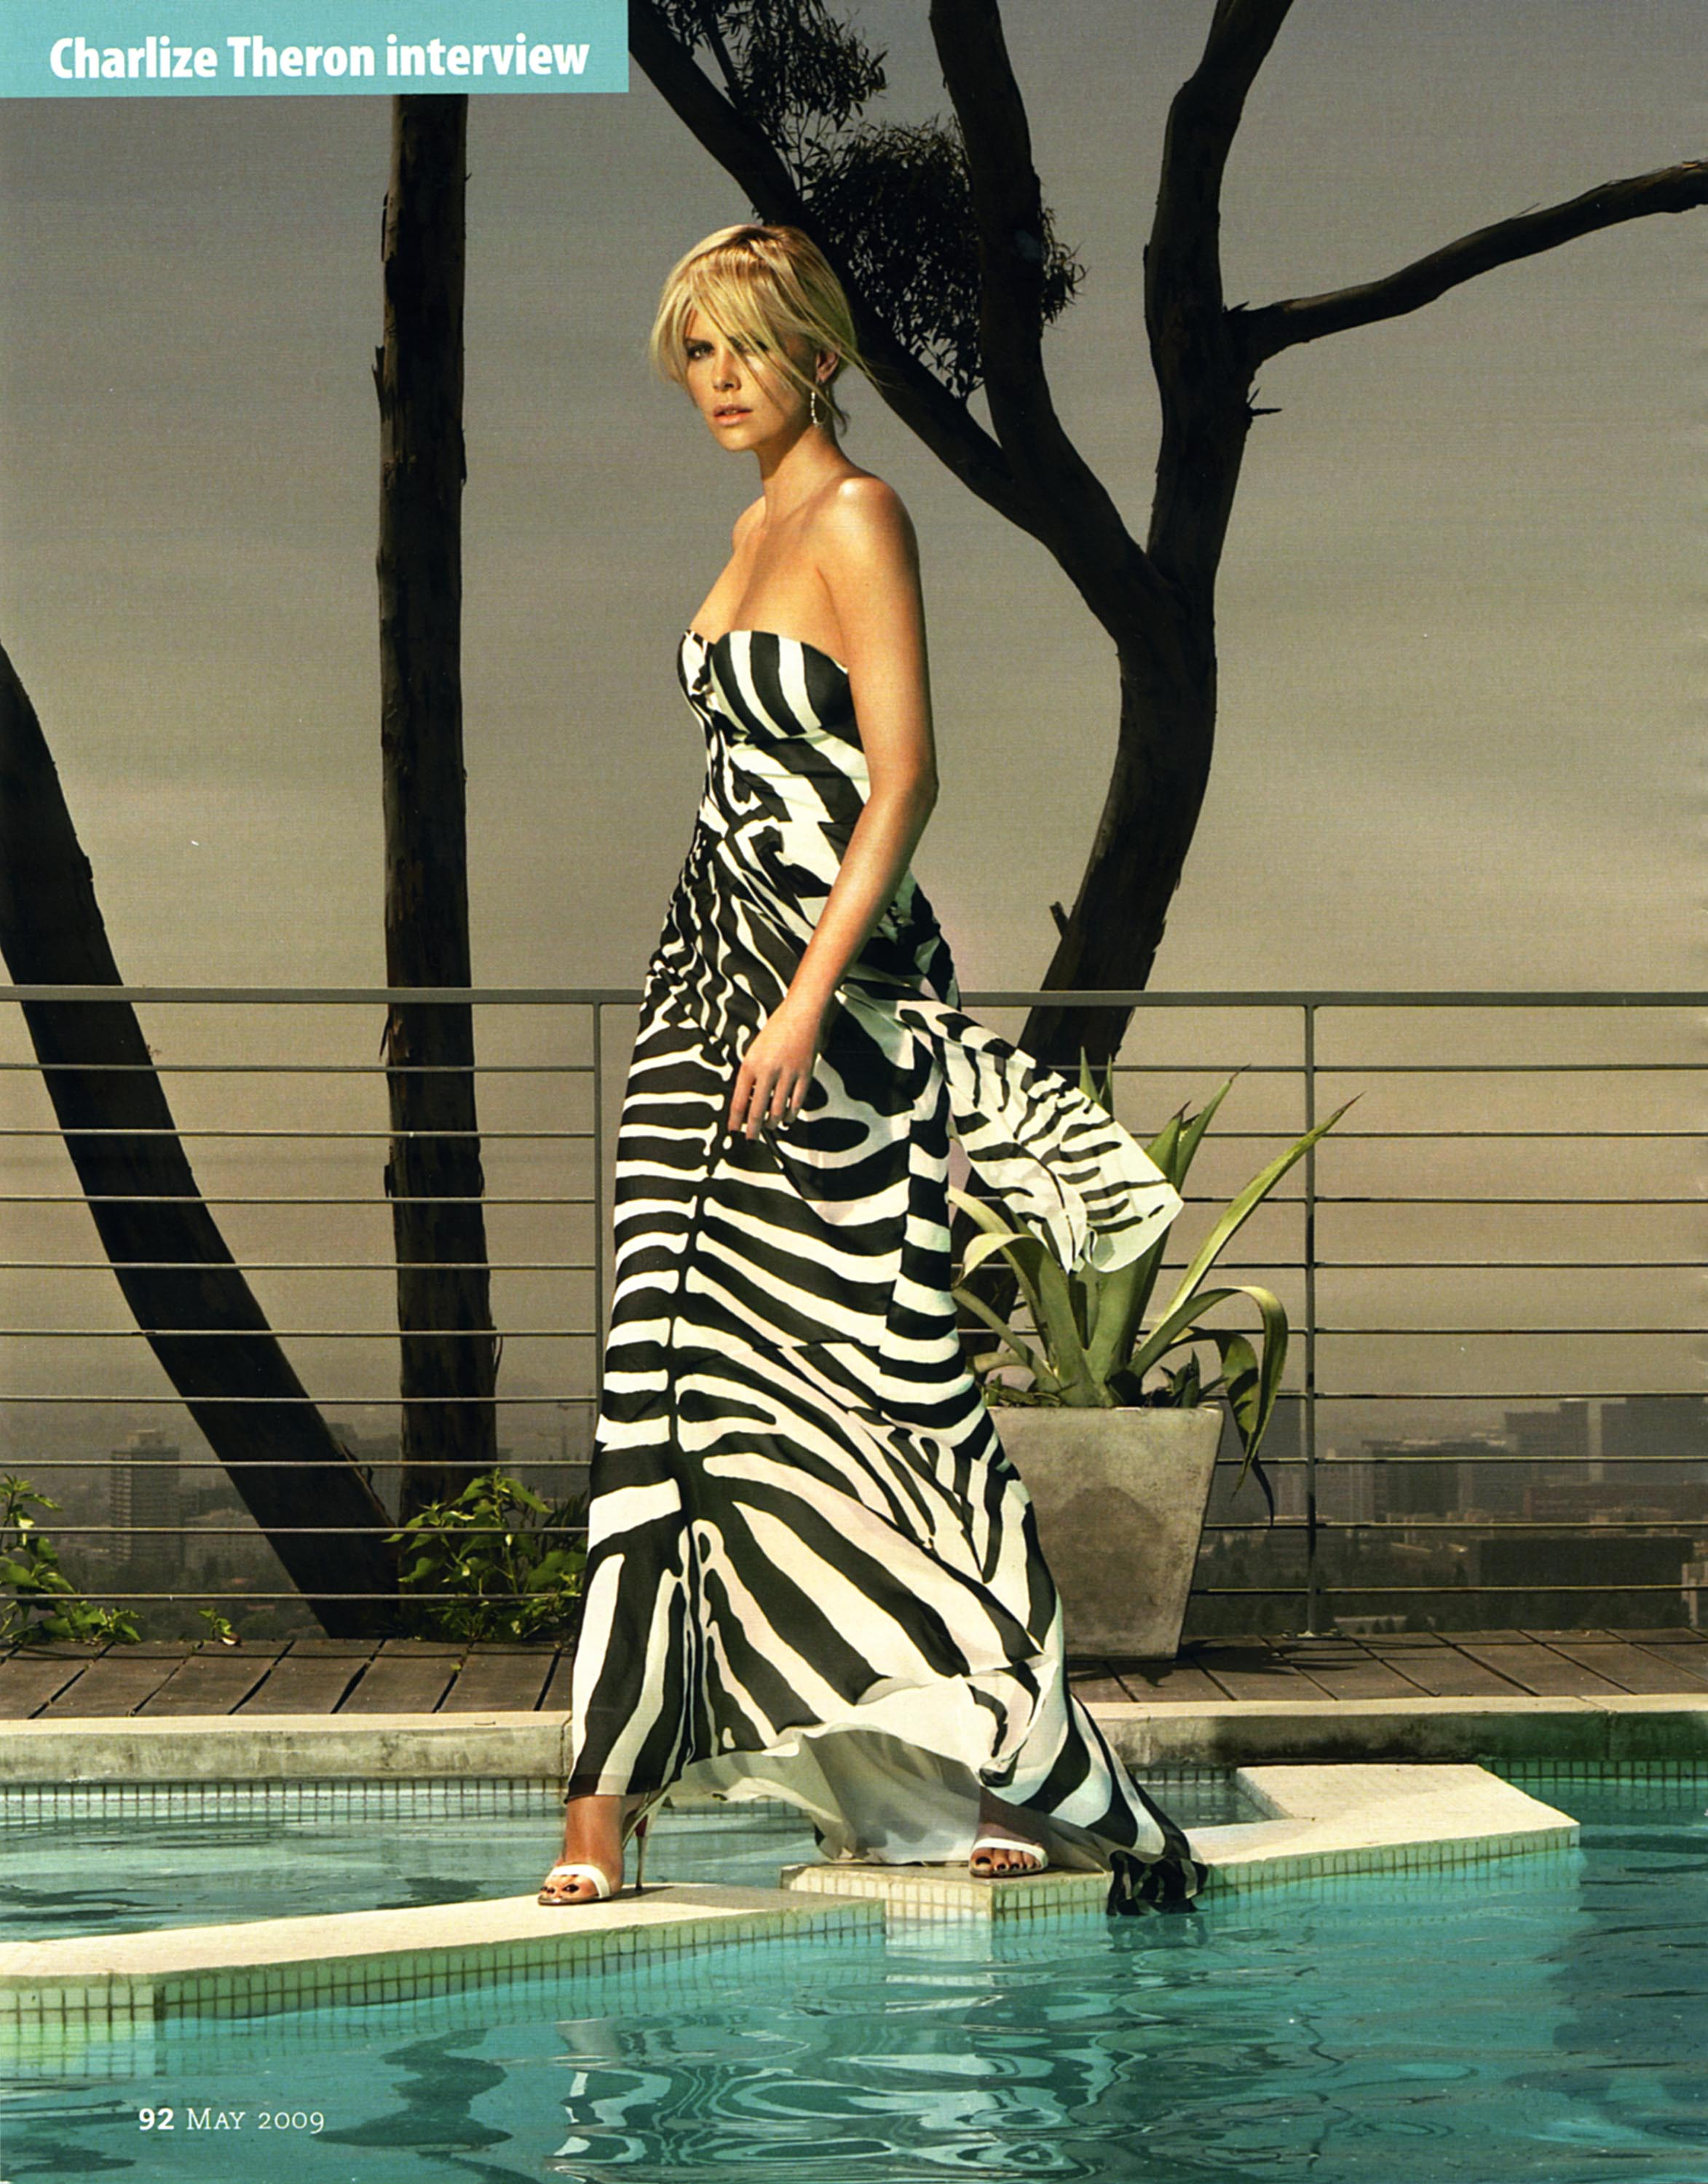 03341_Charlize_Theron_Marie_Claire-5_122_509lo.jpg